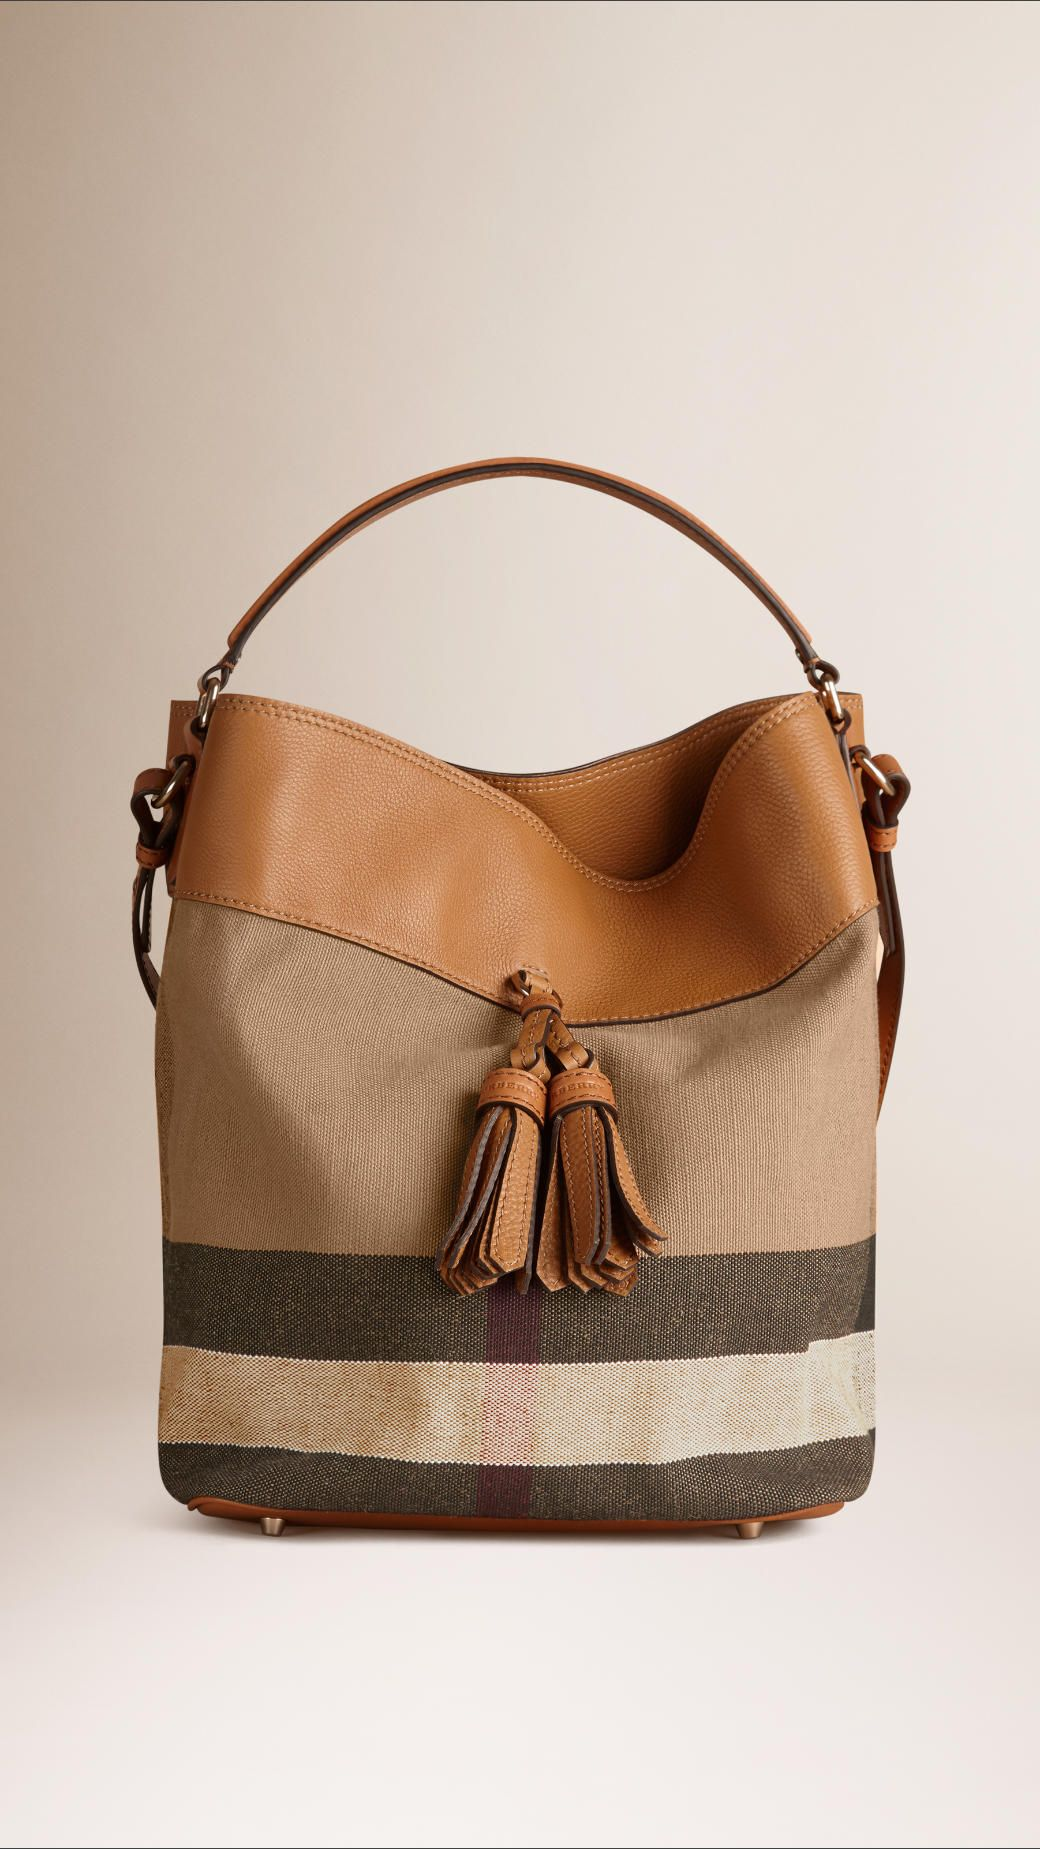 da6274616c61 The Ashby in Canvas check and leather with detachable purse pocket.  Featuring hand-painted edges and leather tassels